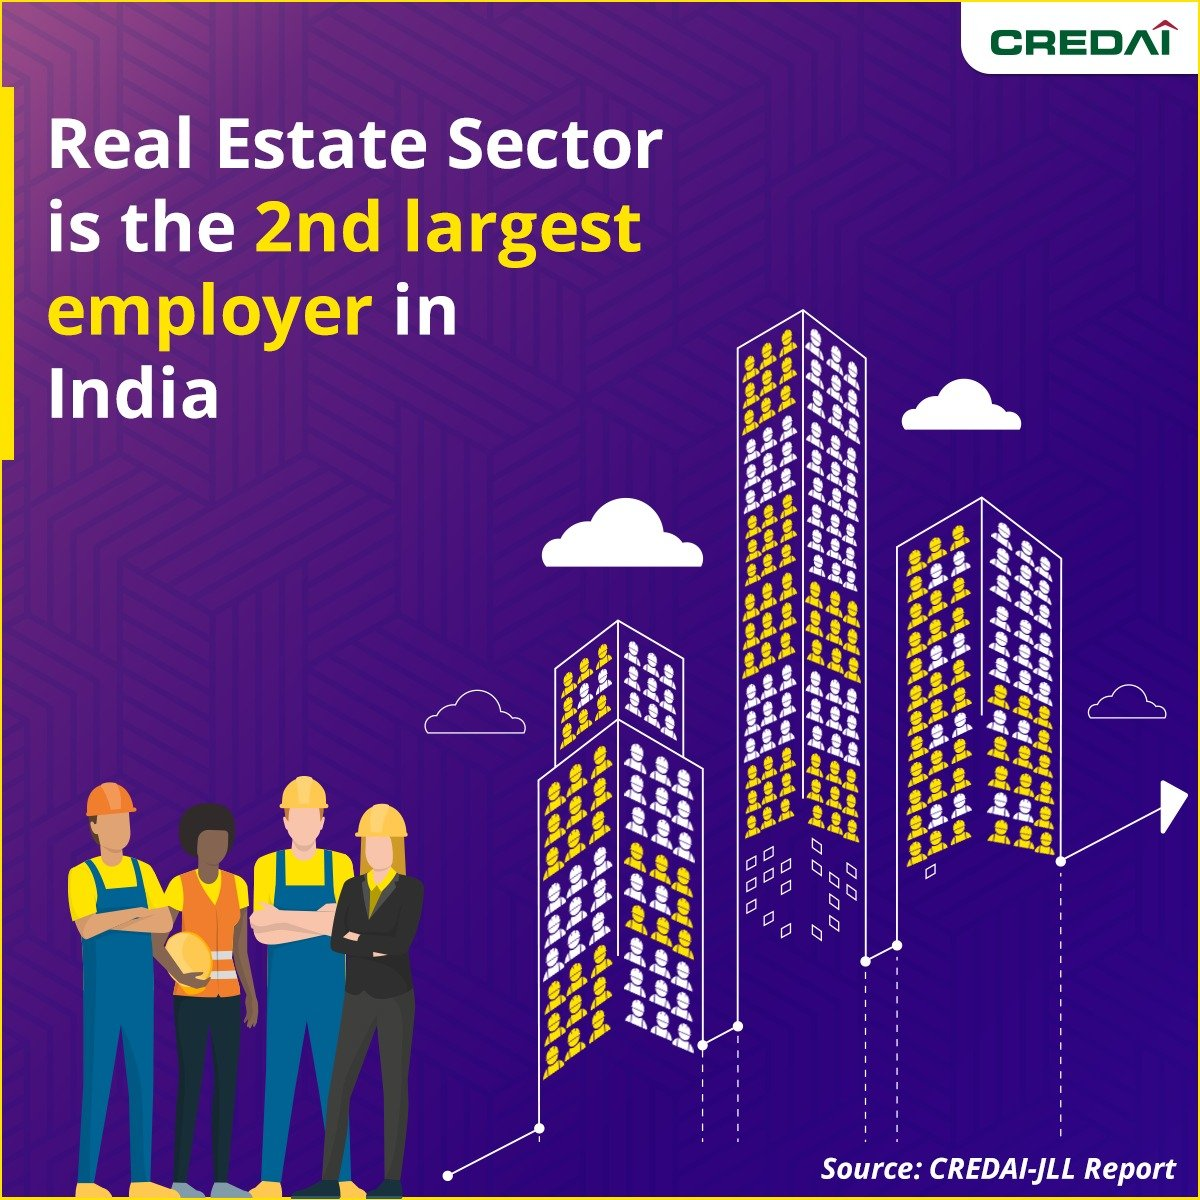 RT @CREDAINational: #FridayFact | The #RealtySector is expected to grow at a rate of 30% over the next decade. https://t.co/onyroxhNM4